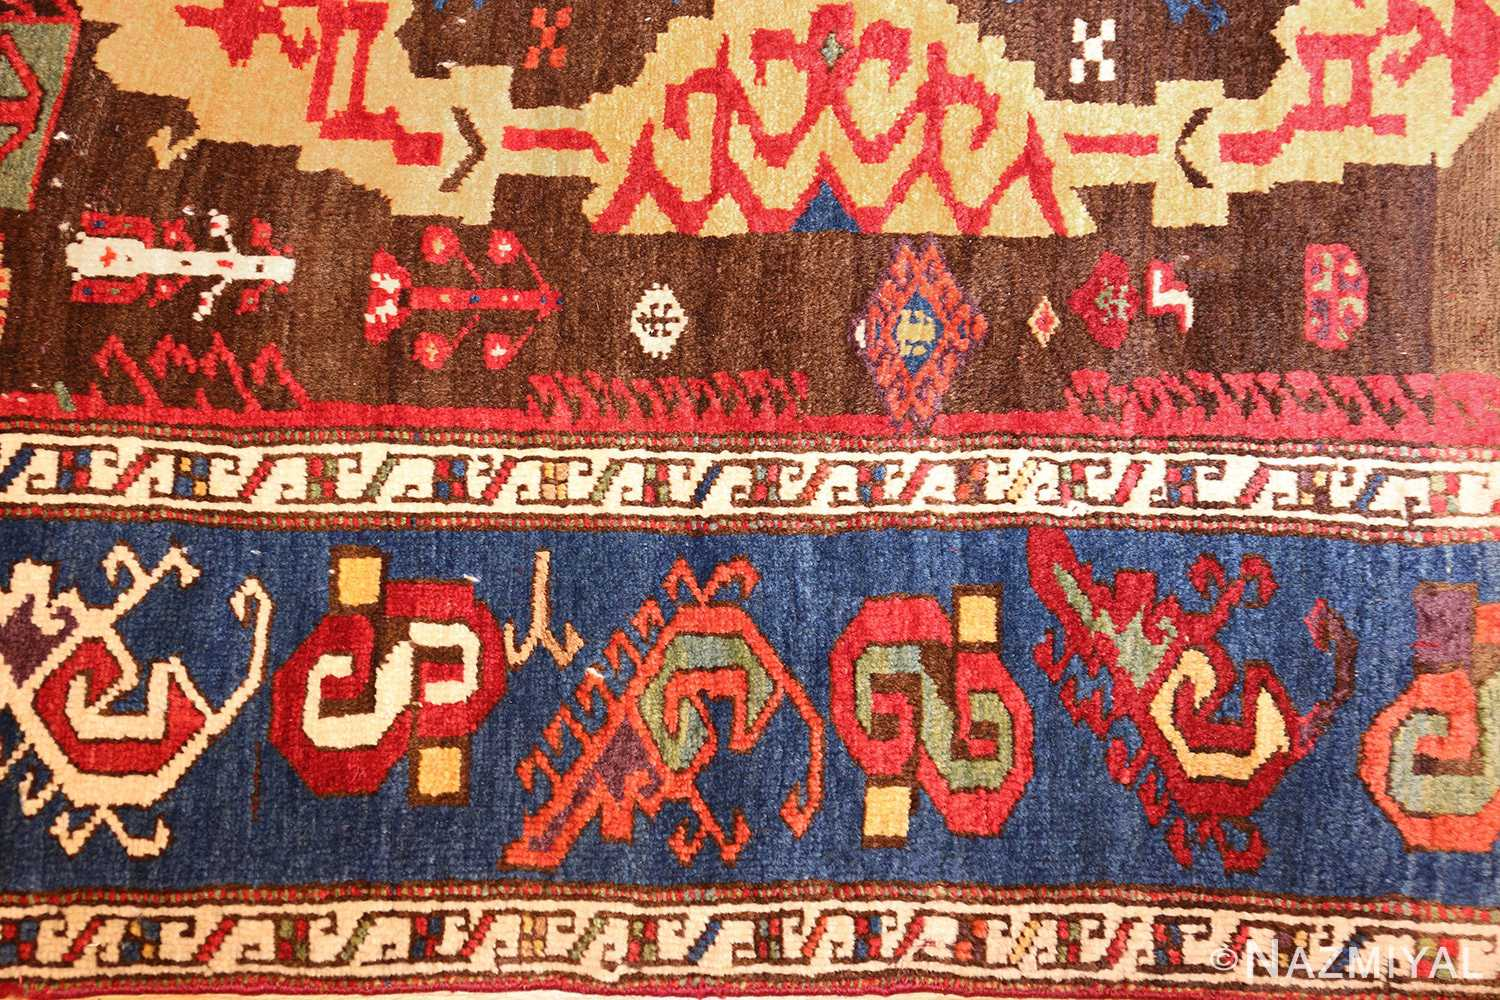 18th century turkish rug from james ballard 47373 border Nazmiyal